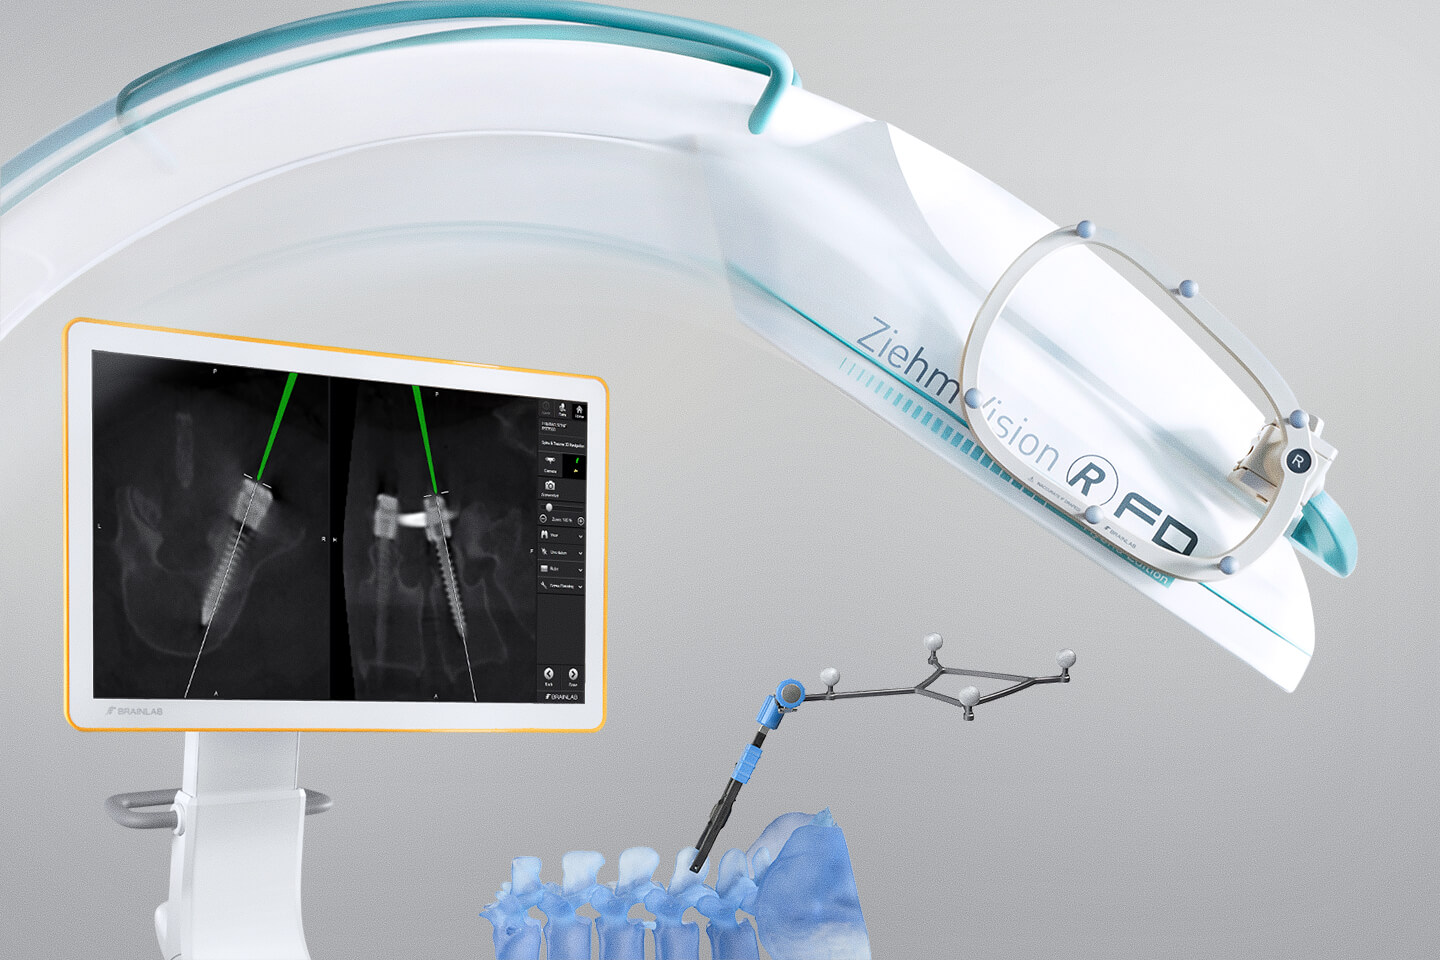 Spine and Trauma Navigation with automatic intraoperative image registration, e.g. with Ziehm Vision RFD 3D scans